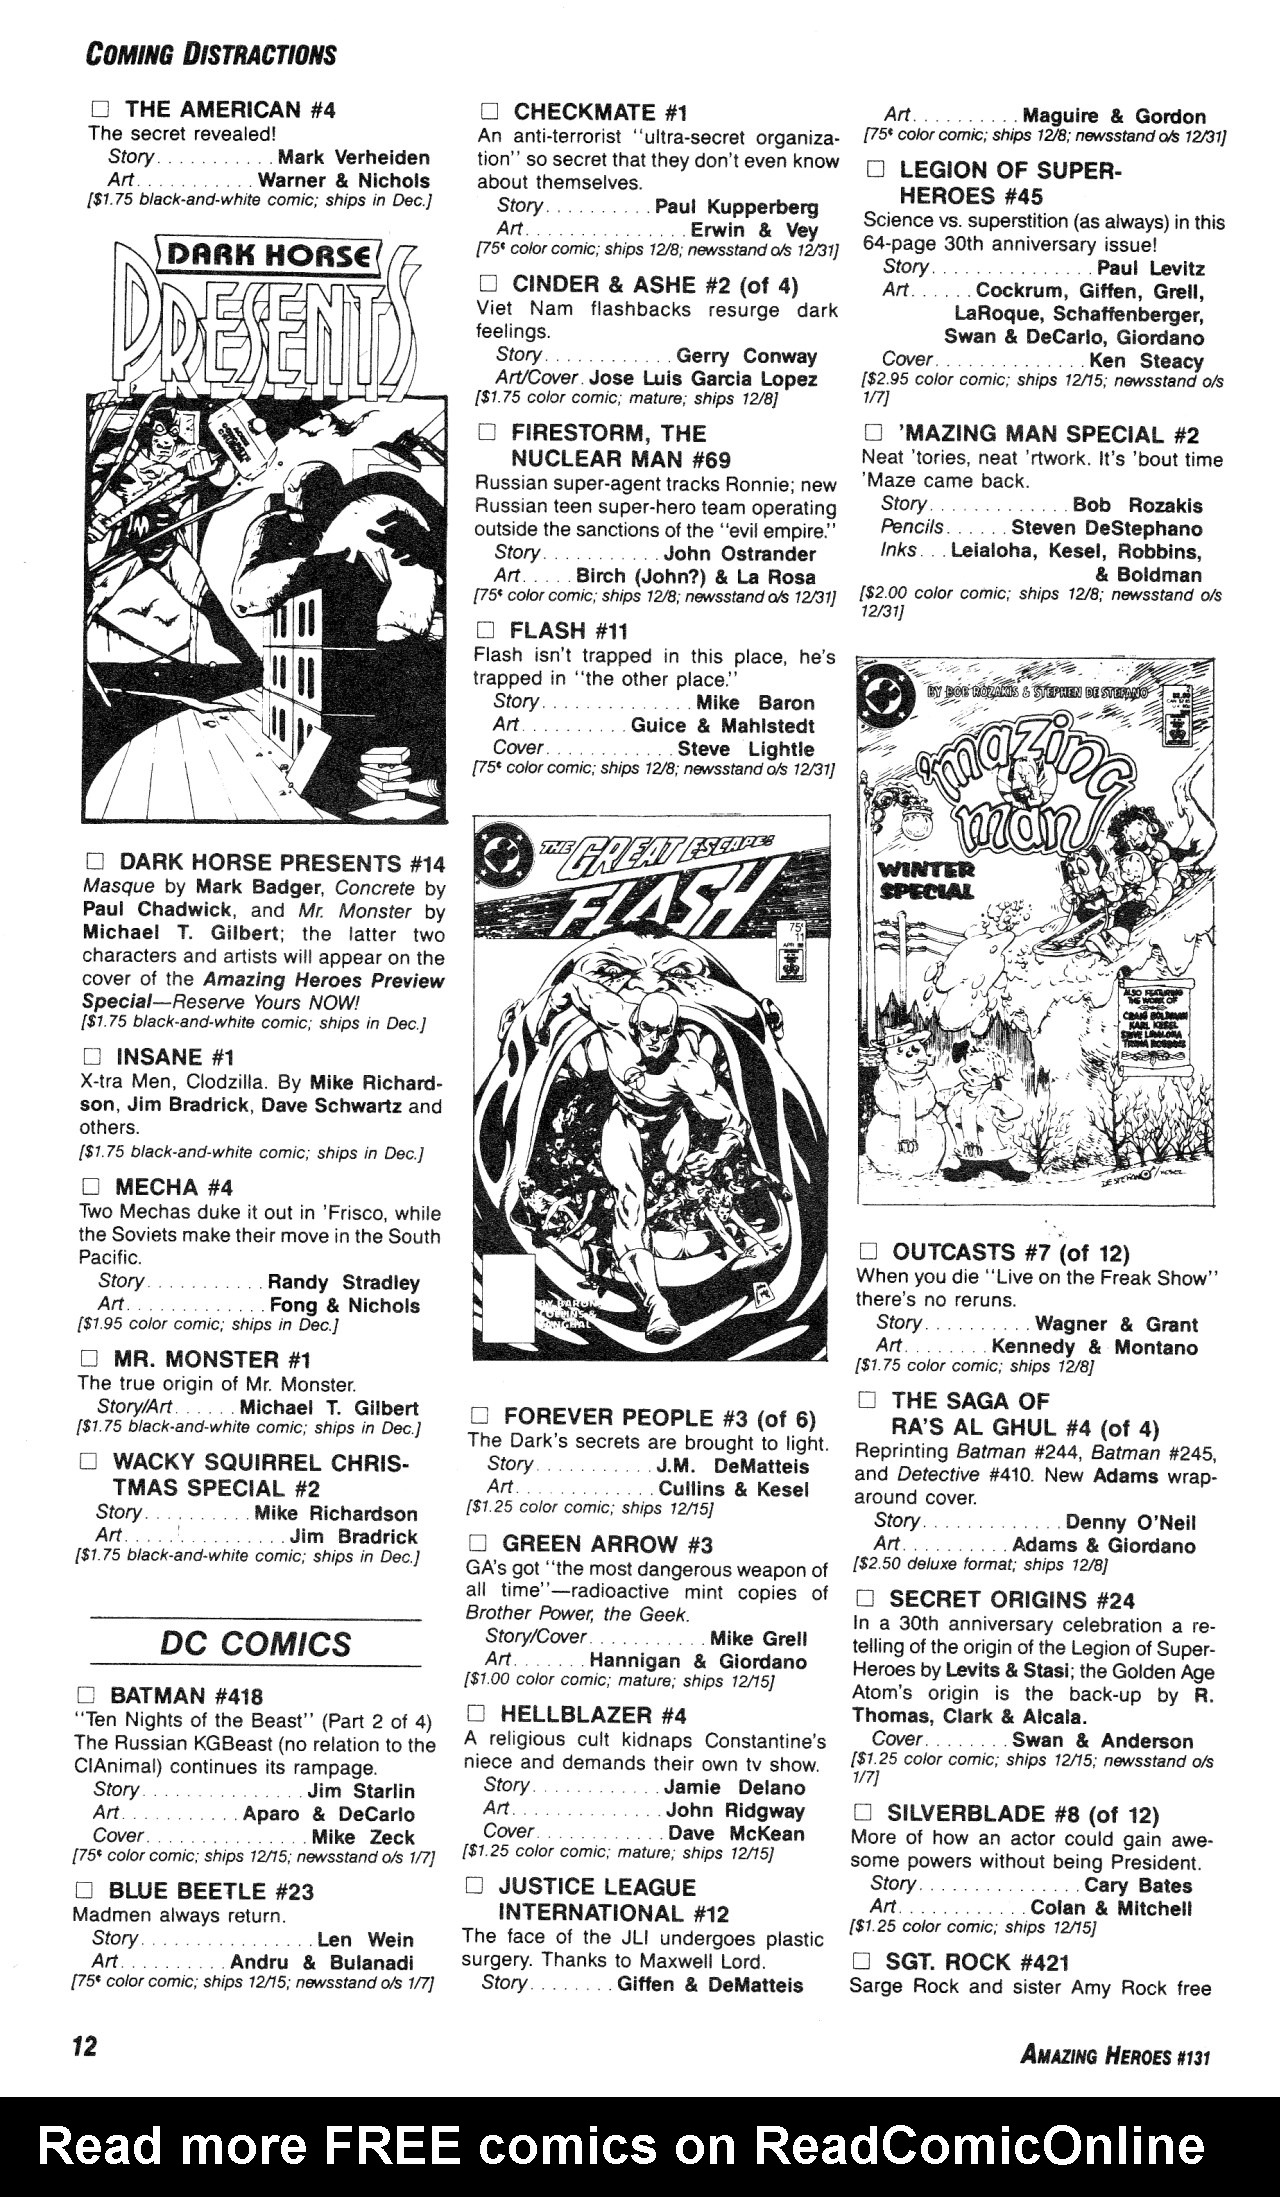 Read online Amazing Heroes comic -  Issue #131 - 12